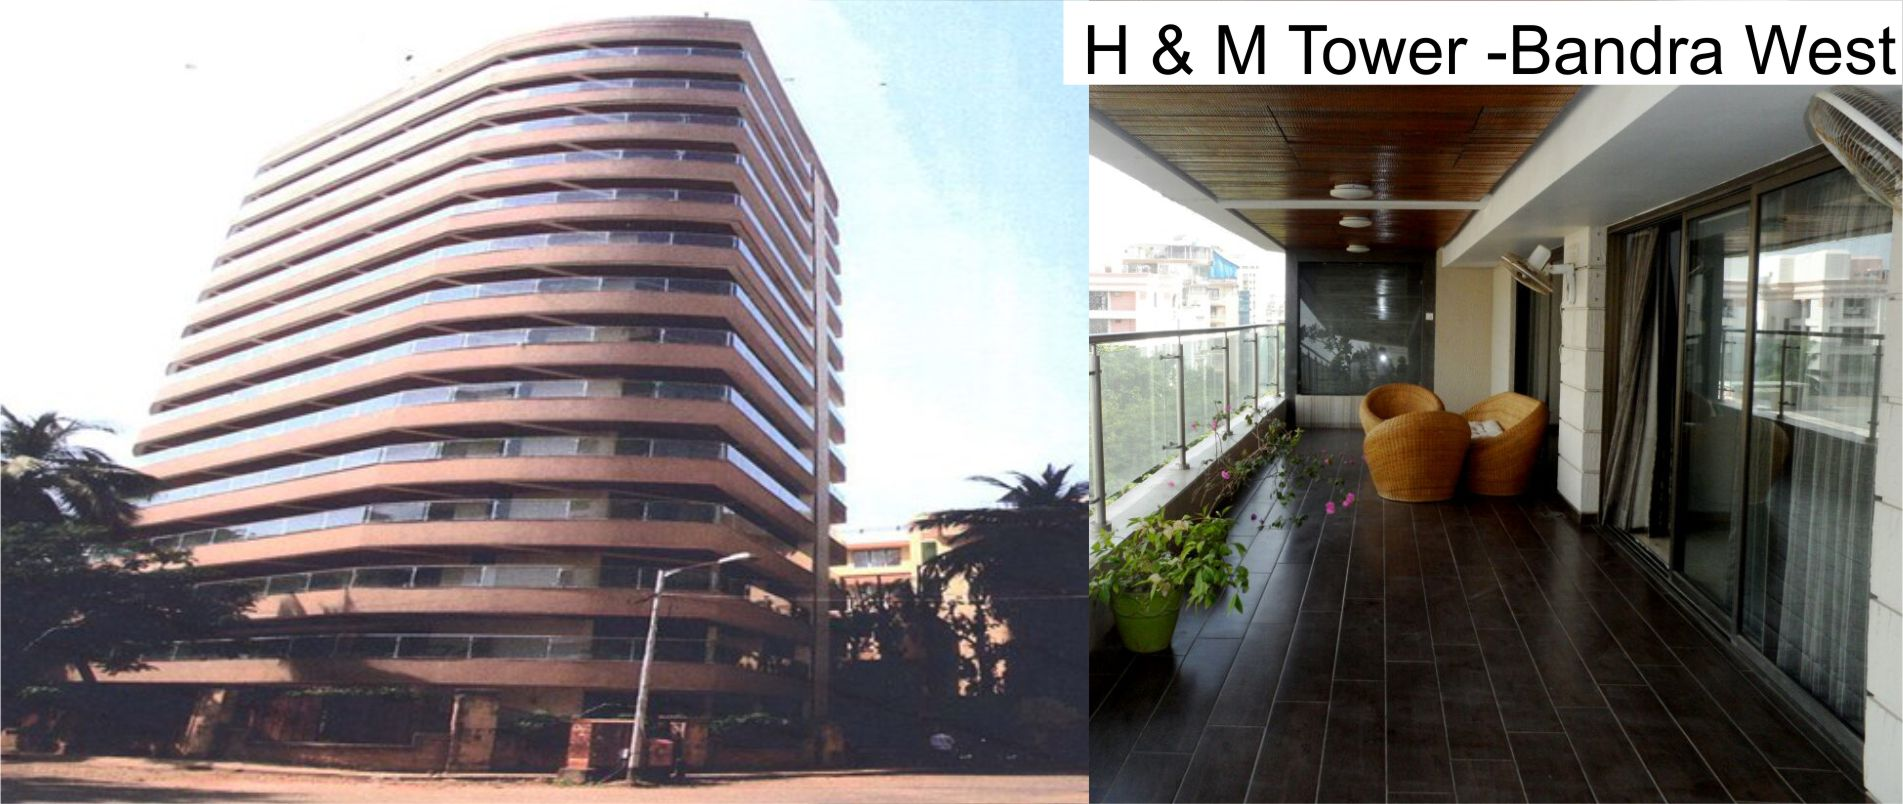 H & M Tower  -Bandra West